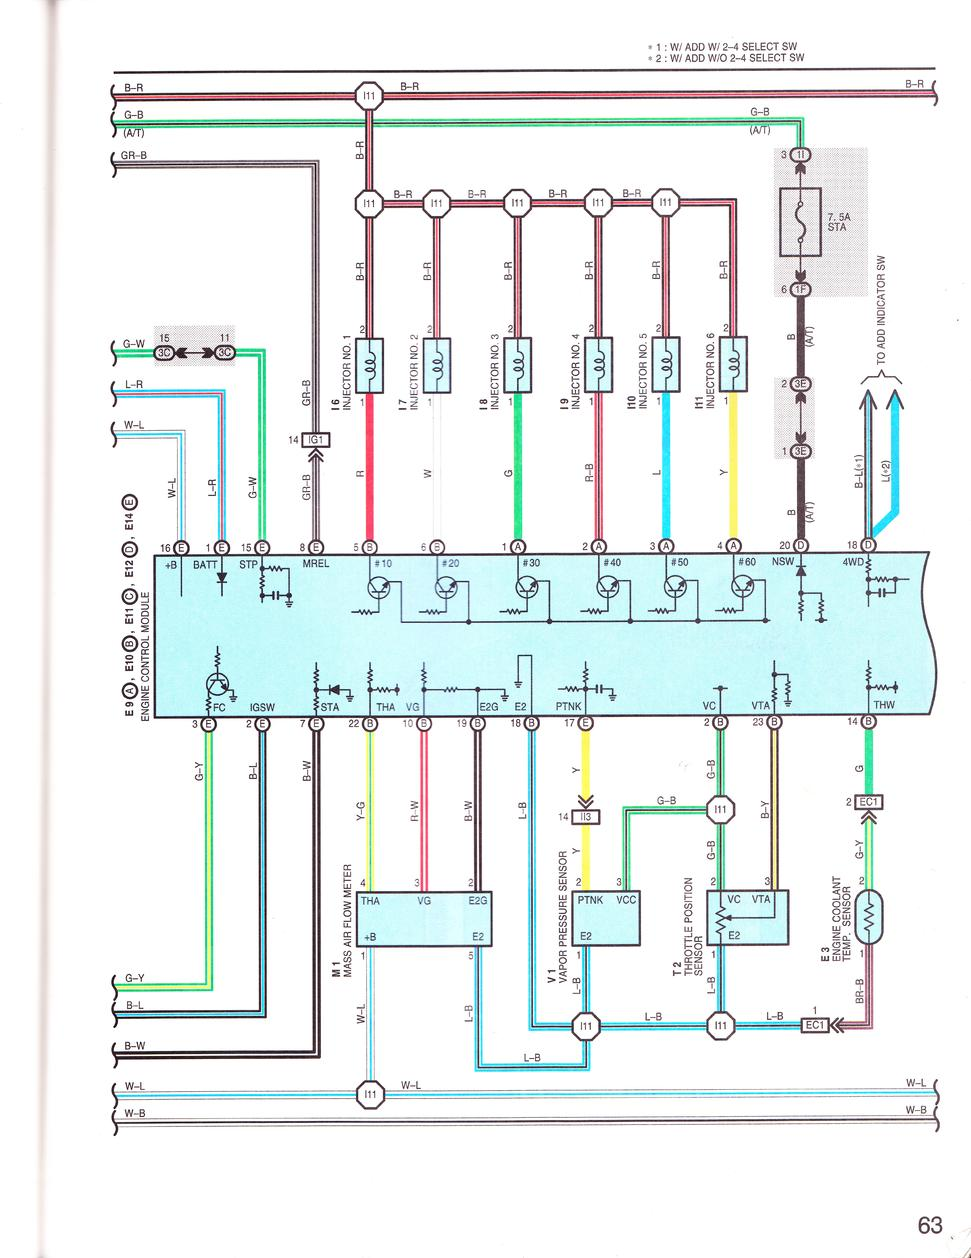 Picture Of A 1999 Mafsensor Wire Harness Please - Toyota 4runner Forum